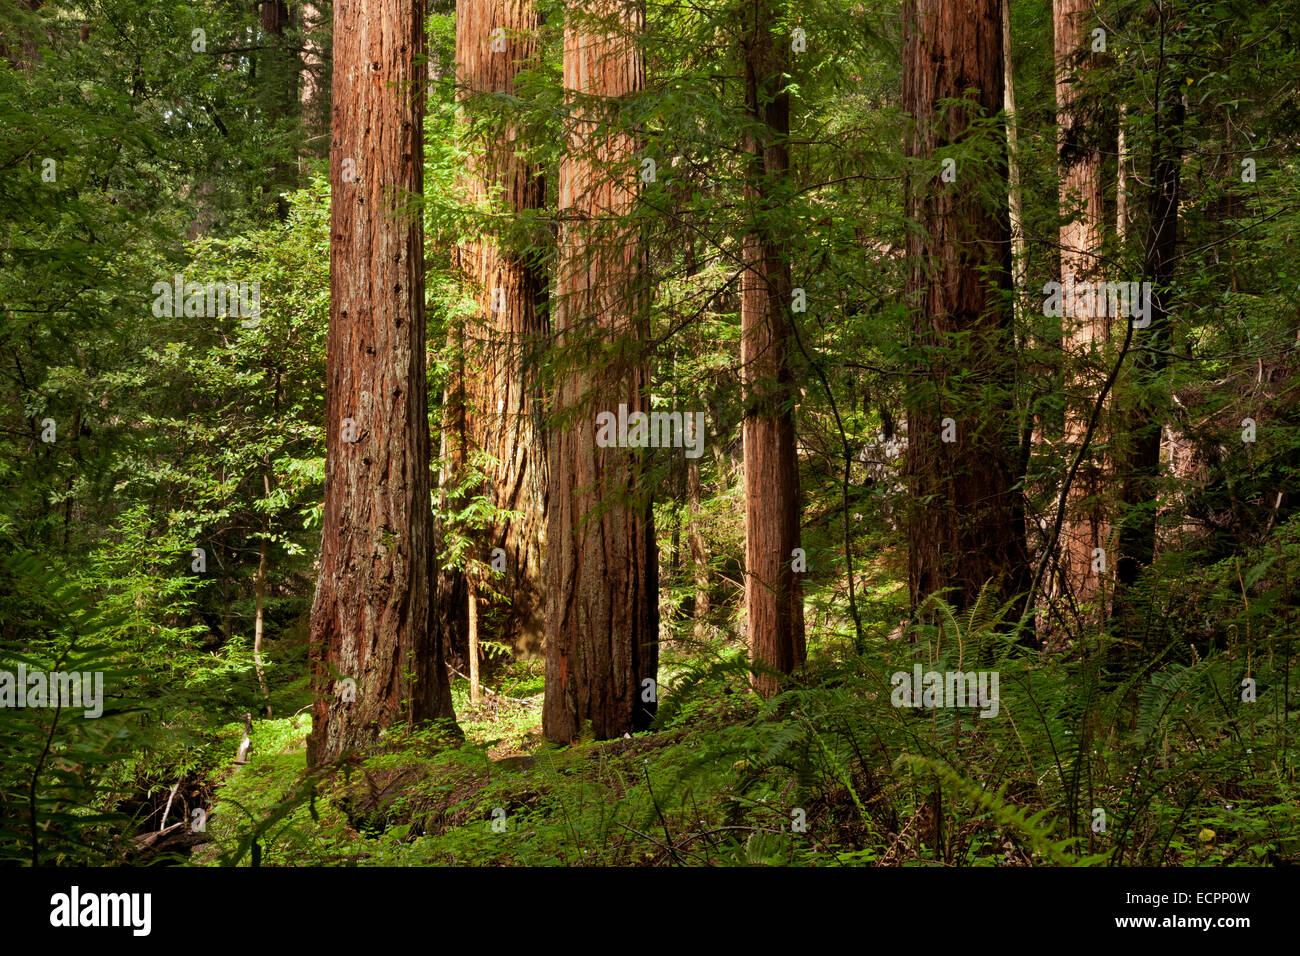 Redwood trees in the Peters Grove area of Portola Redwoods State Park in the Santa Cruz Mountains. - Stock Image